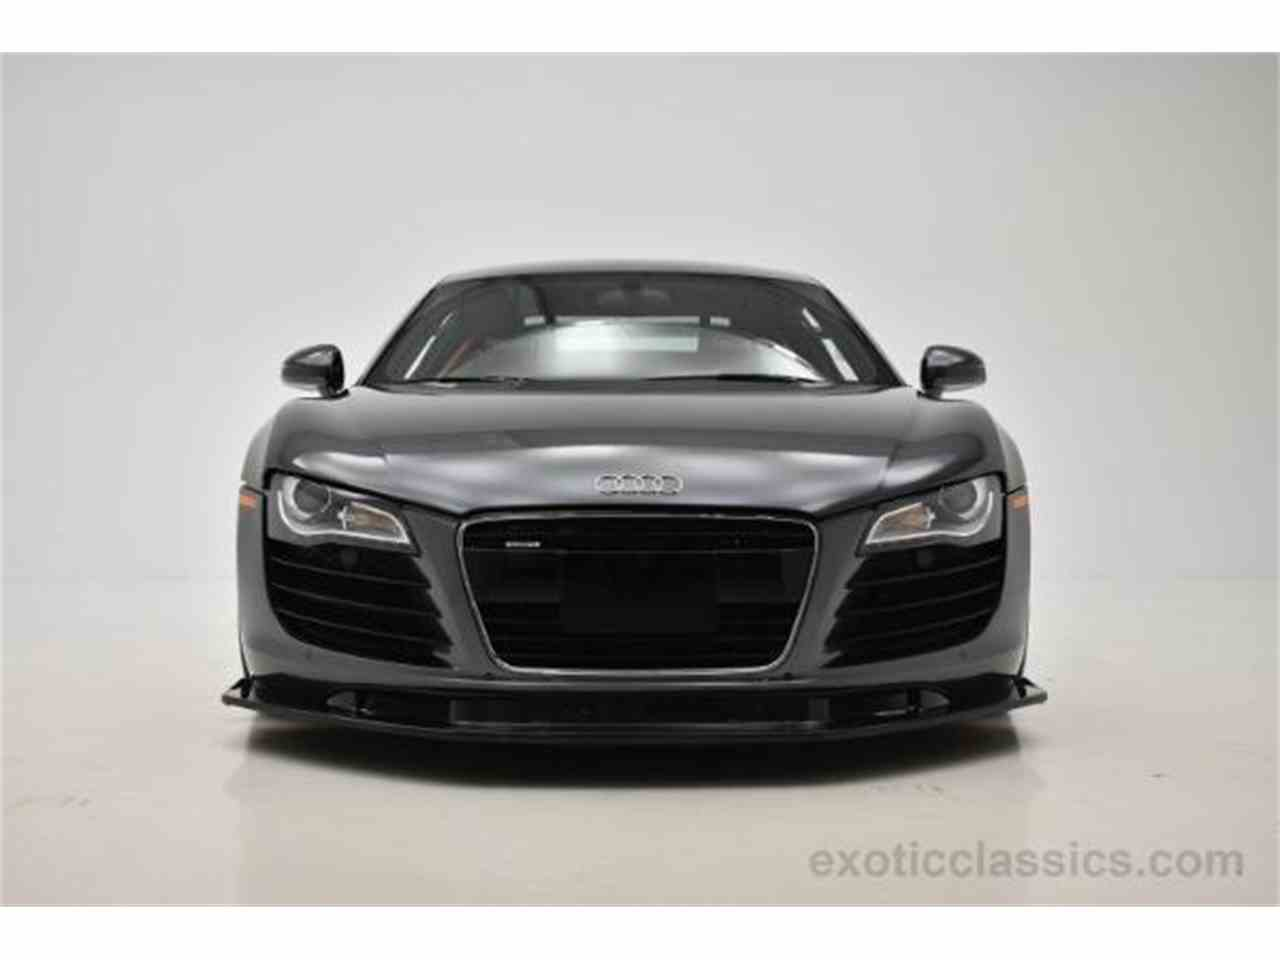 Large Picture of '09 Audi R8 located in Syosset New York - $84,888.00 - KO6N